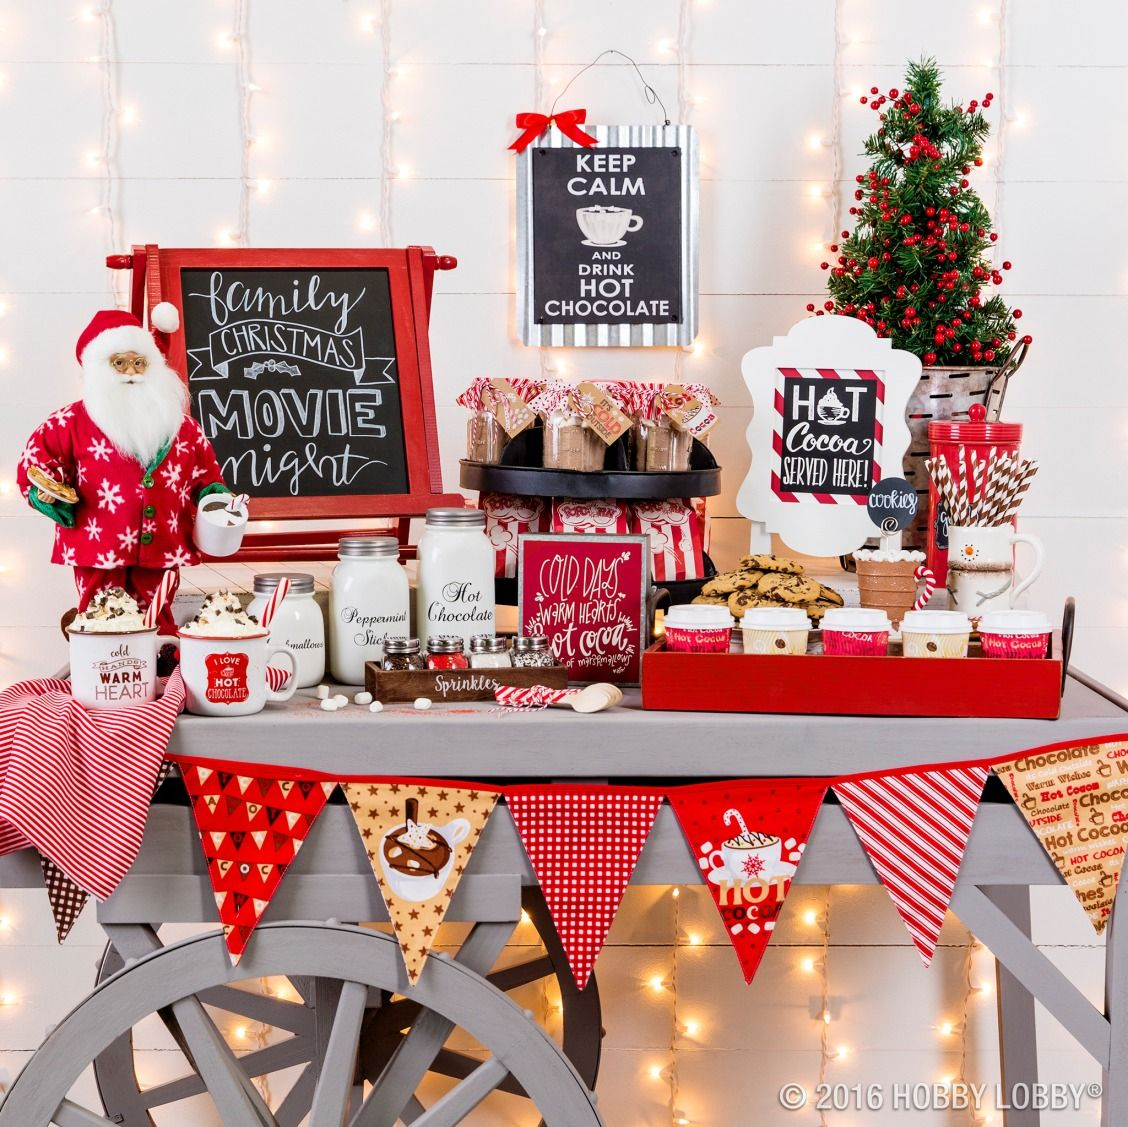 This Christmas Host A Hot Chocolate Themed Movie Night For Family And Friends